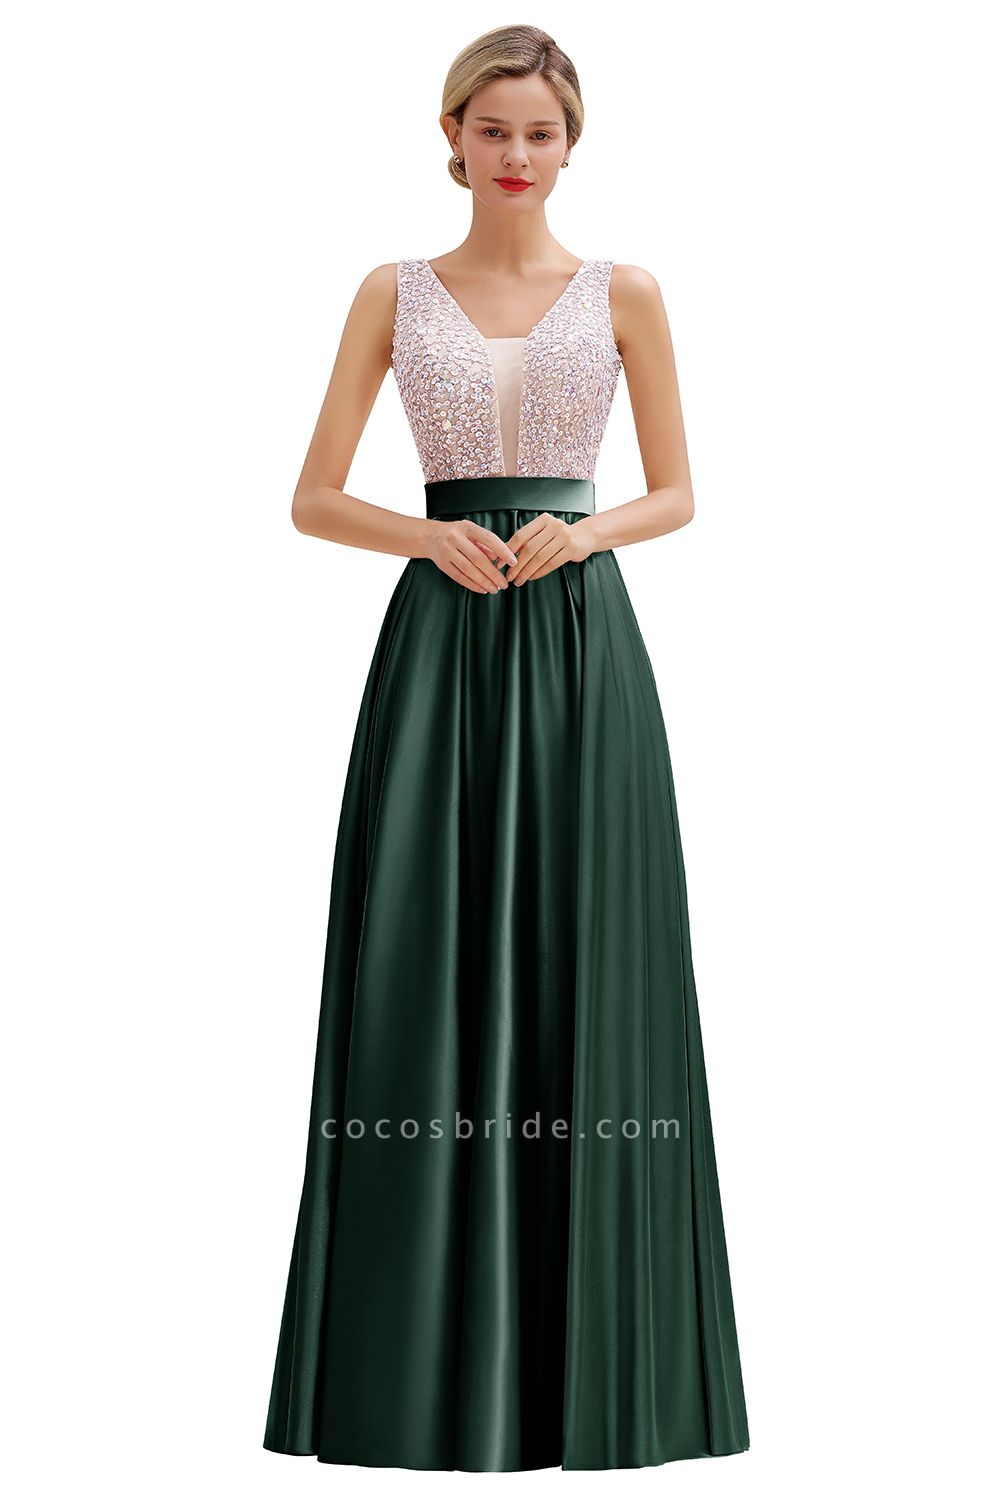 Awesome Open Back Beading Satin A-line Prom Dress